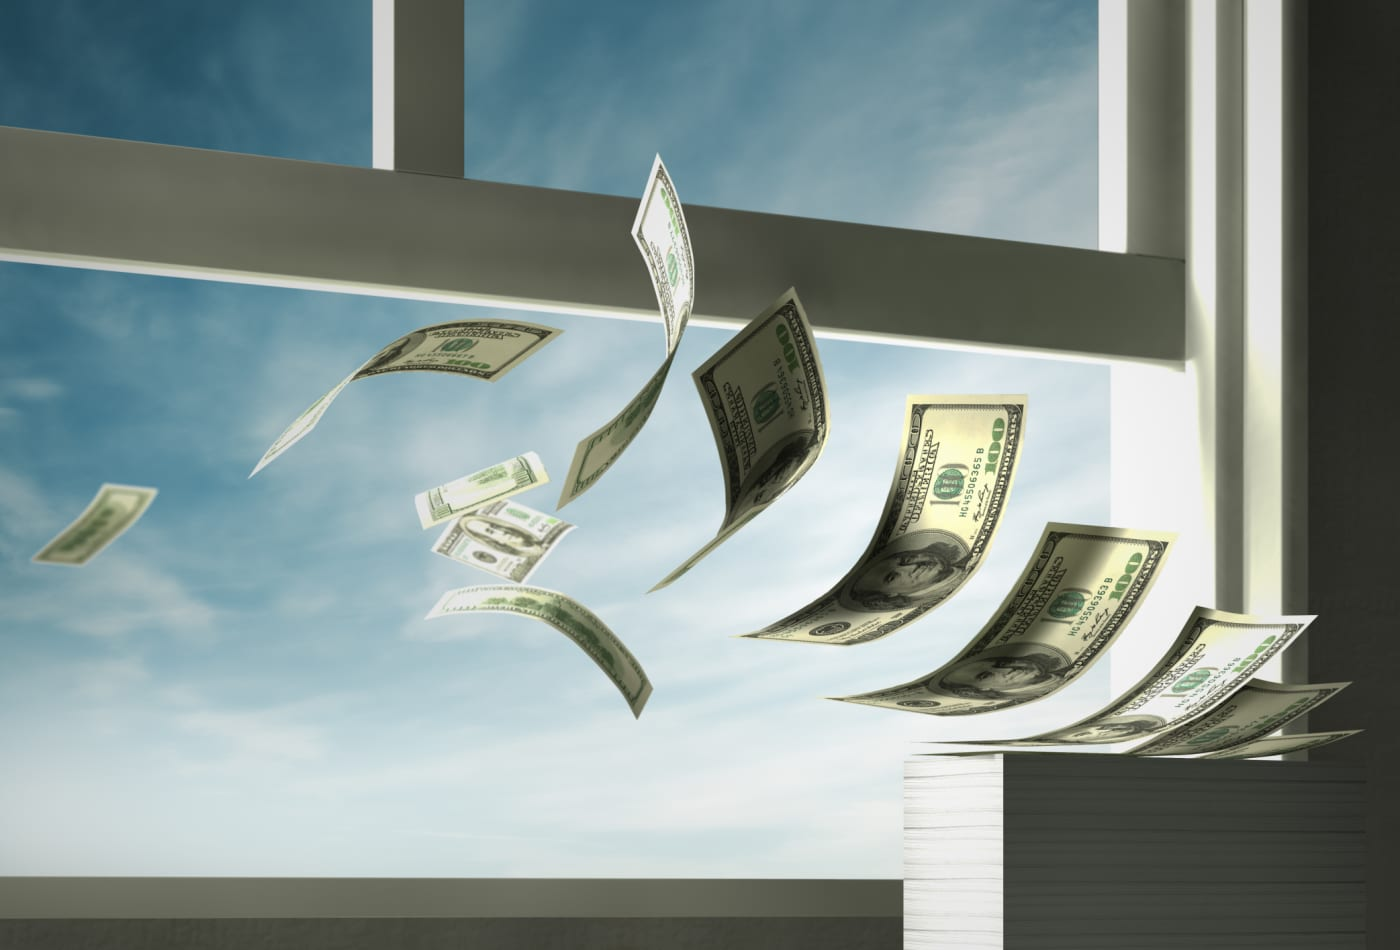 Retirement savings haven't recovered from the recession. Some say 401(k) plans are a 'disaster'